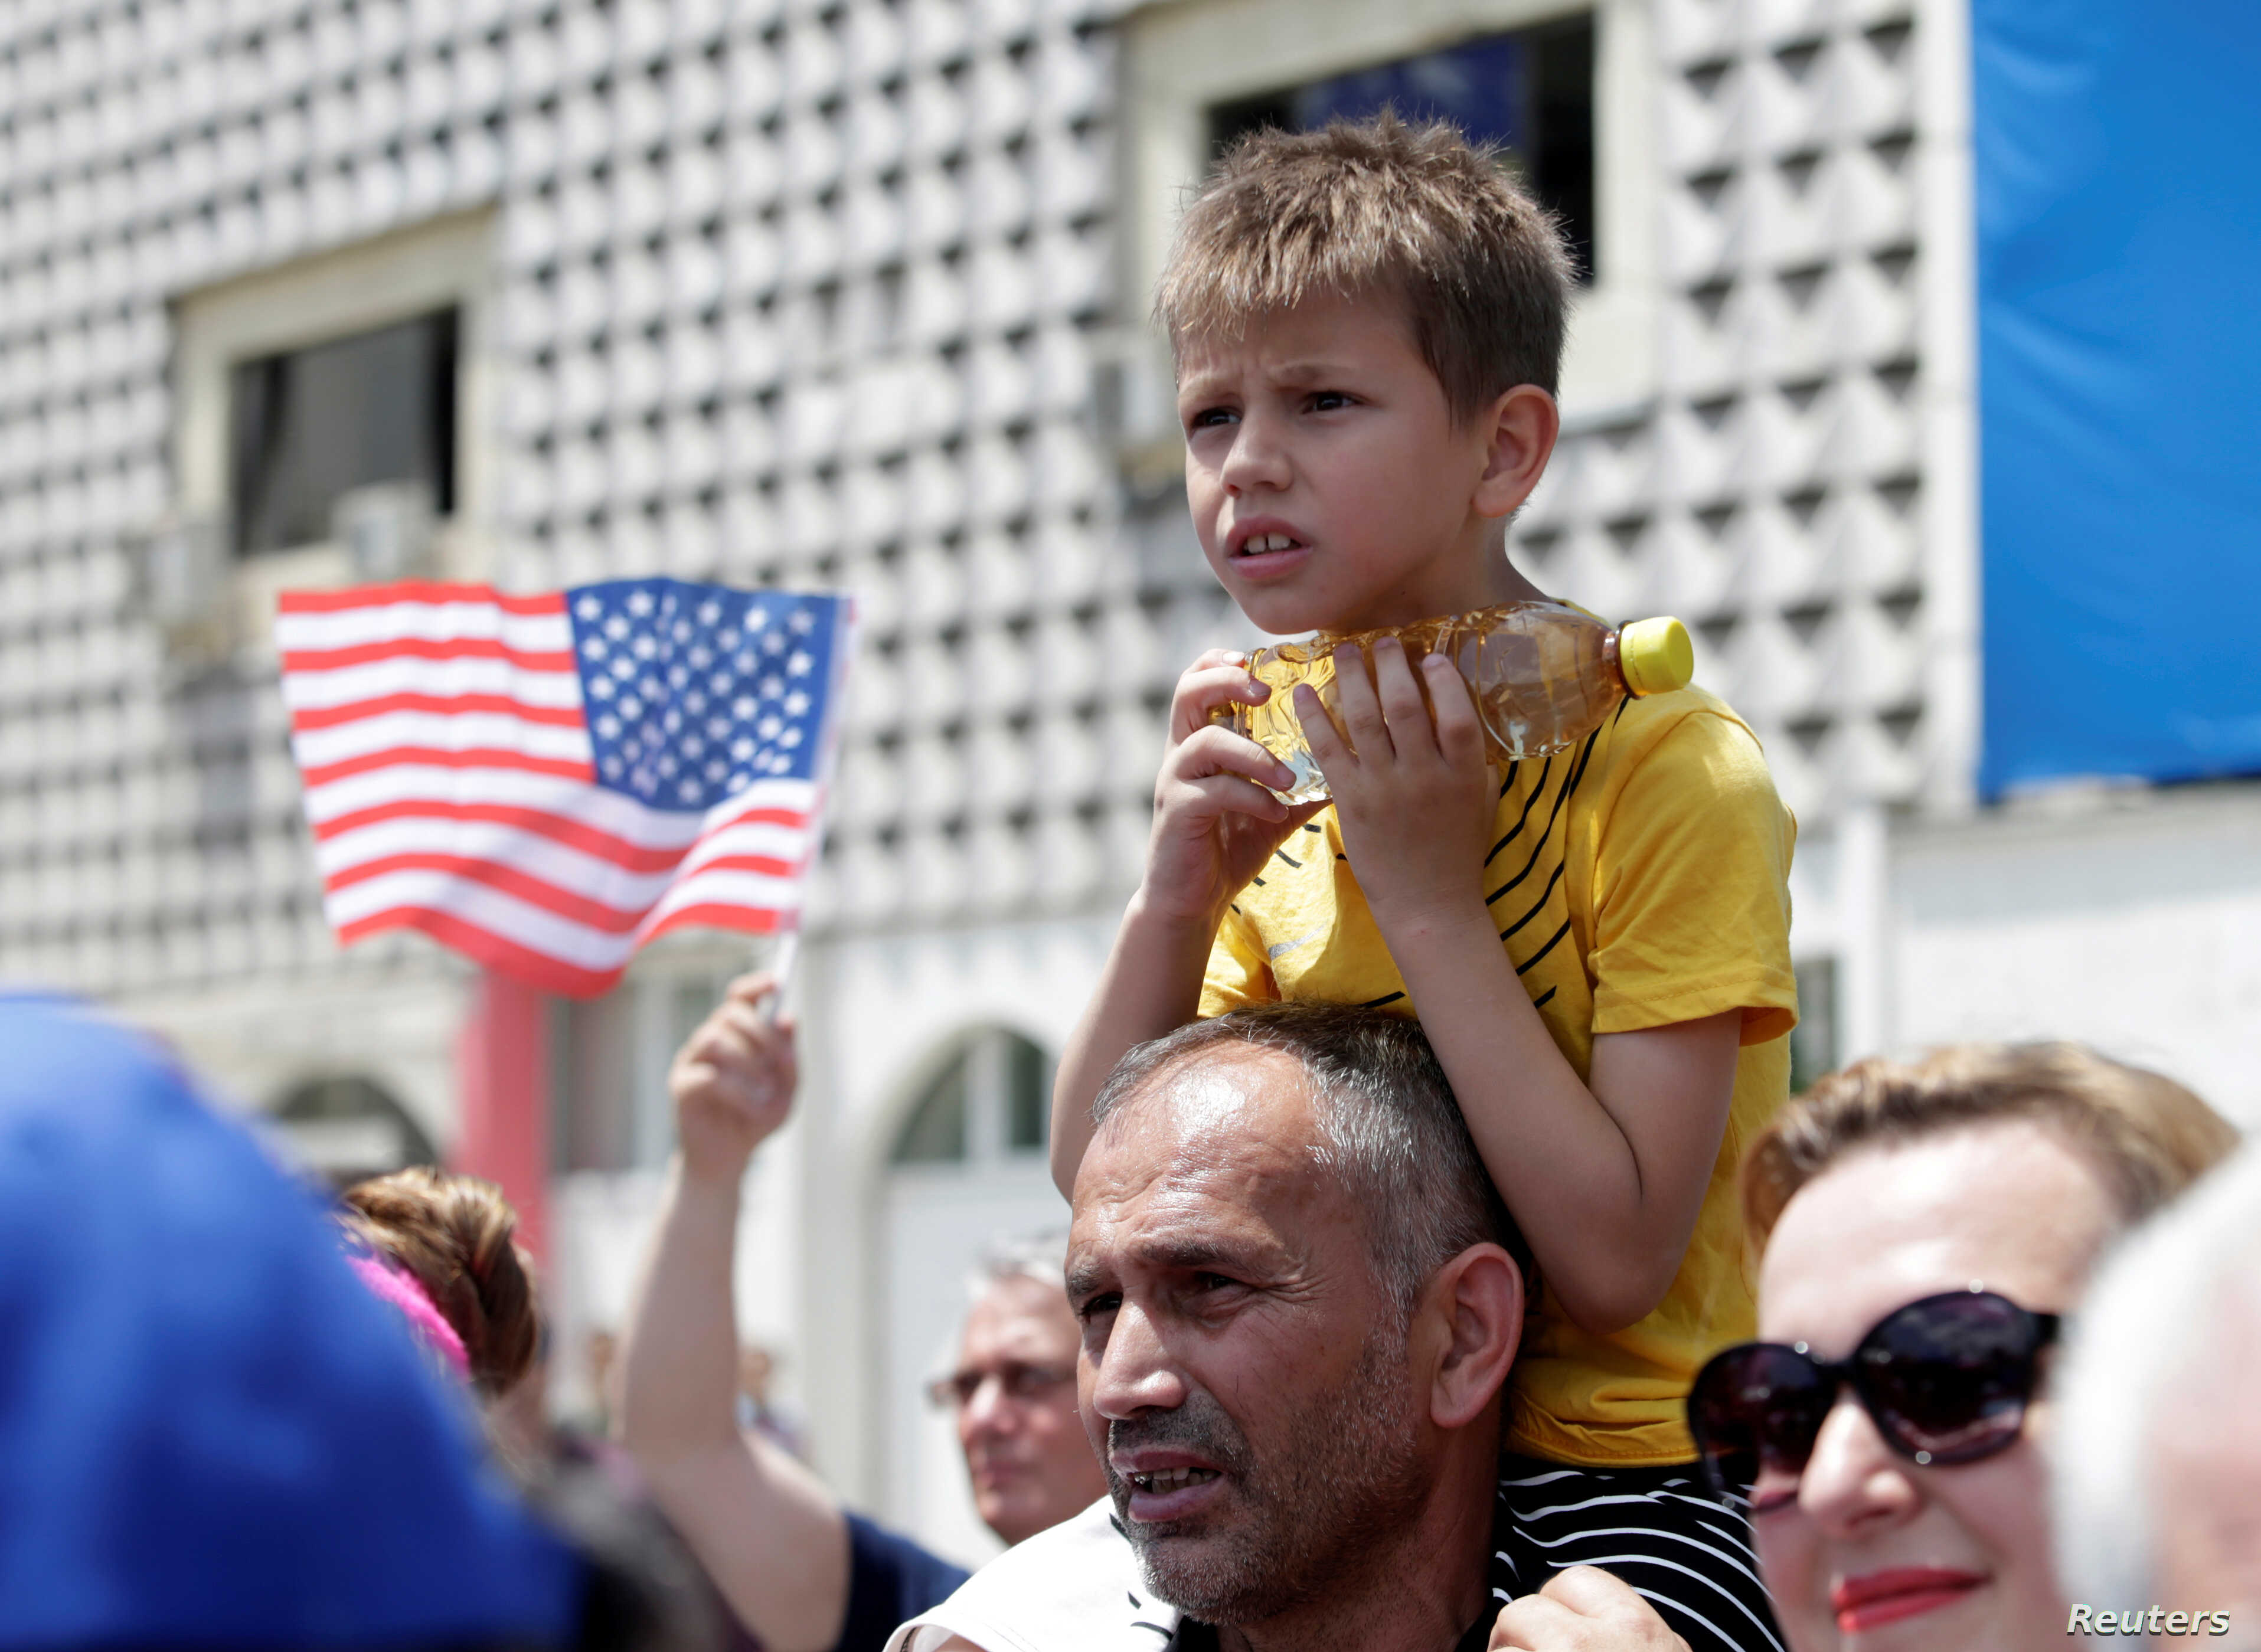 A boy looks on during the 20th anniversary of the deployment of NATO Troops in Kosovo in Pristina, Kosovo, June 12, 2019.